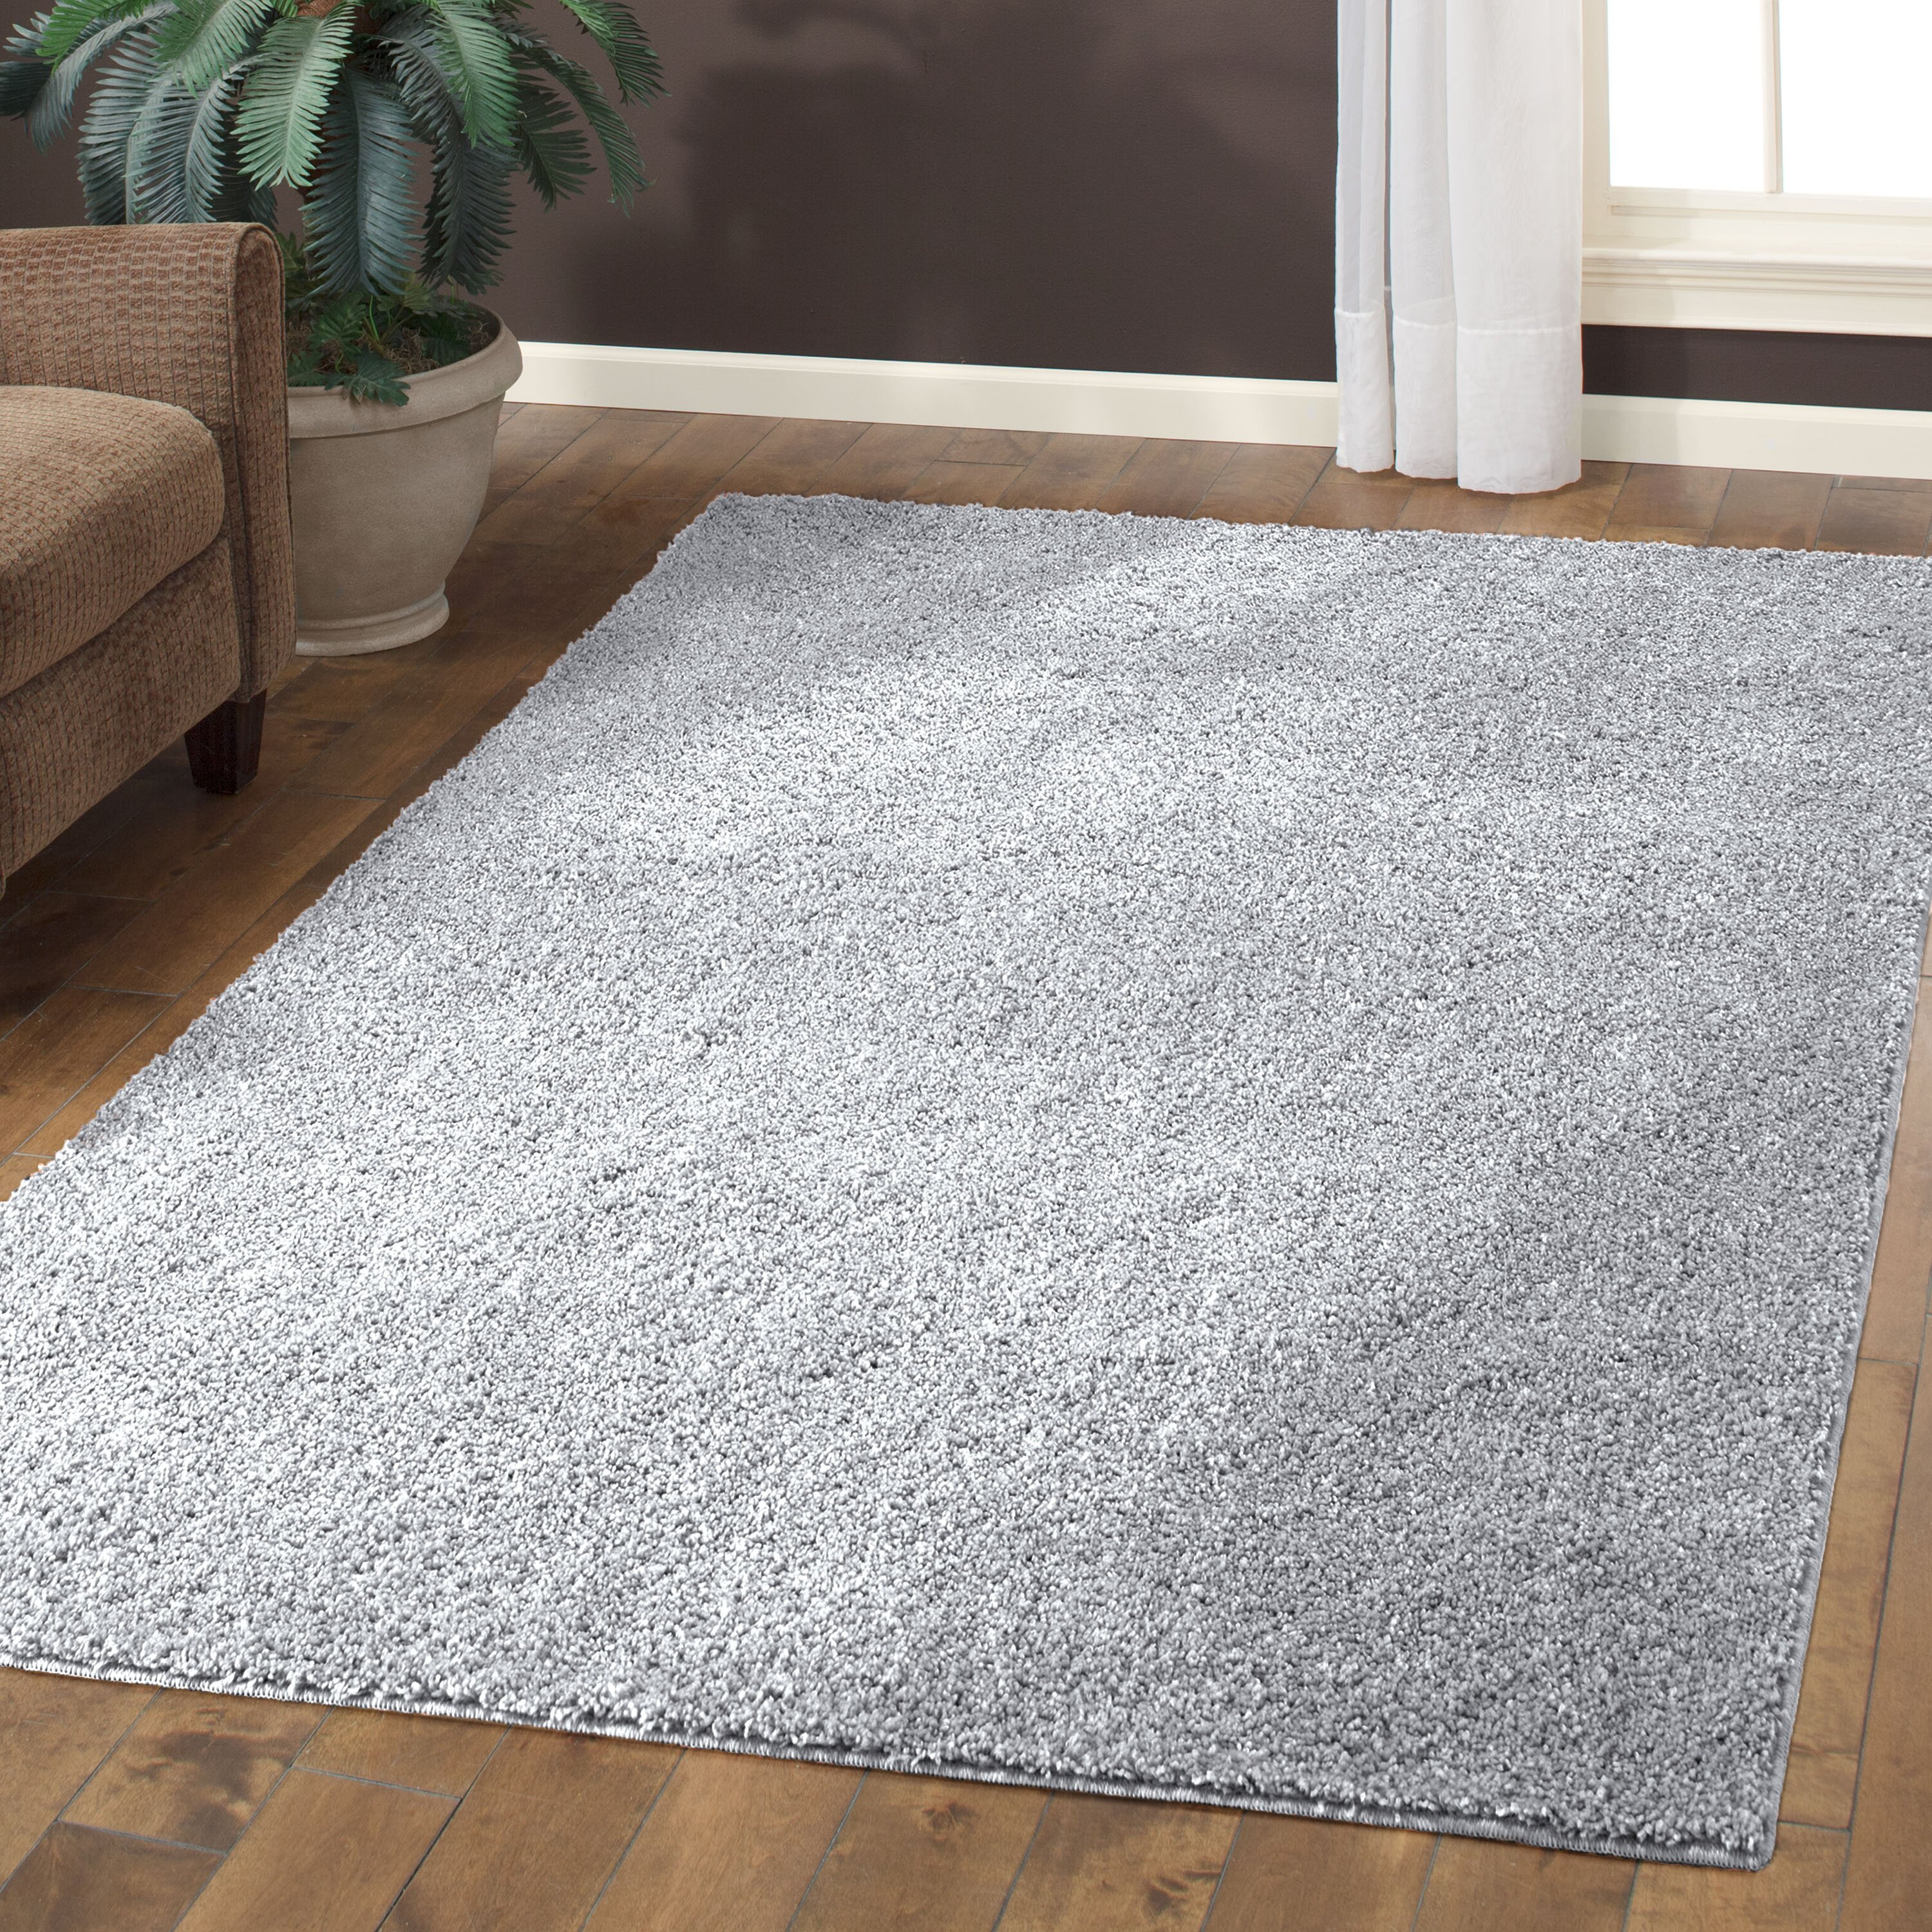 Soft area rugs roselawnlutheran for Soft area rugs